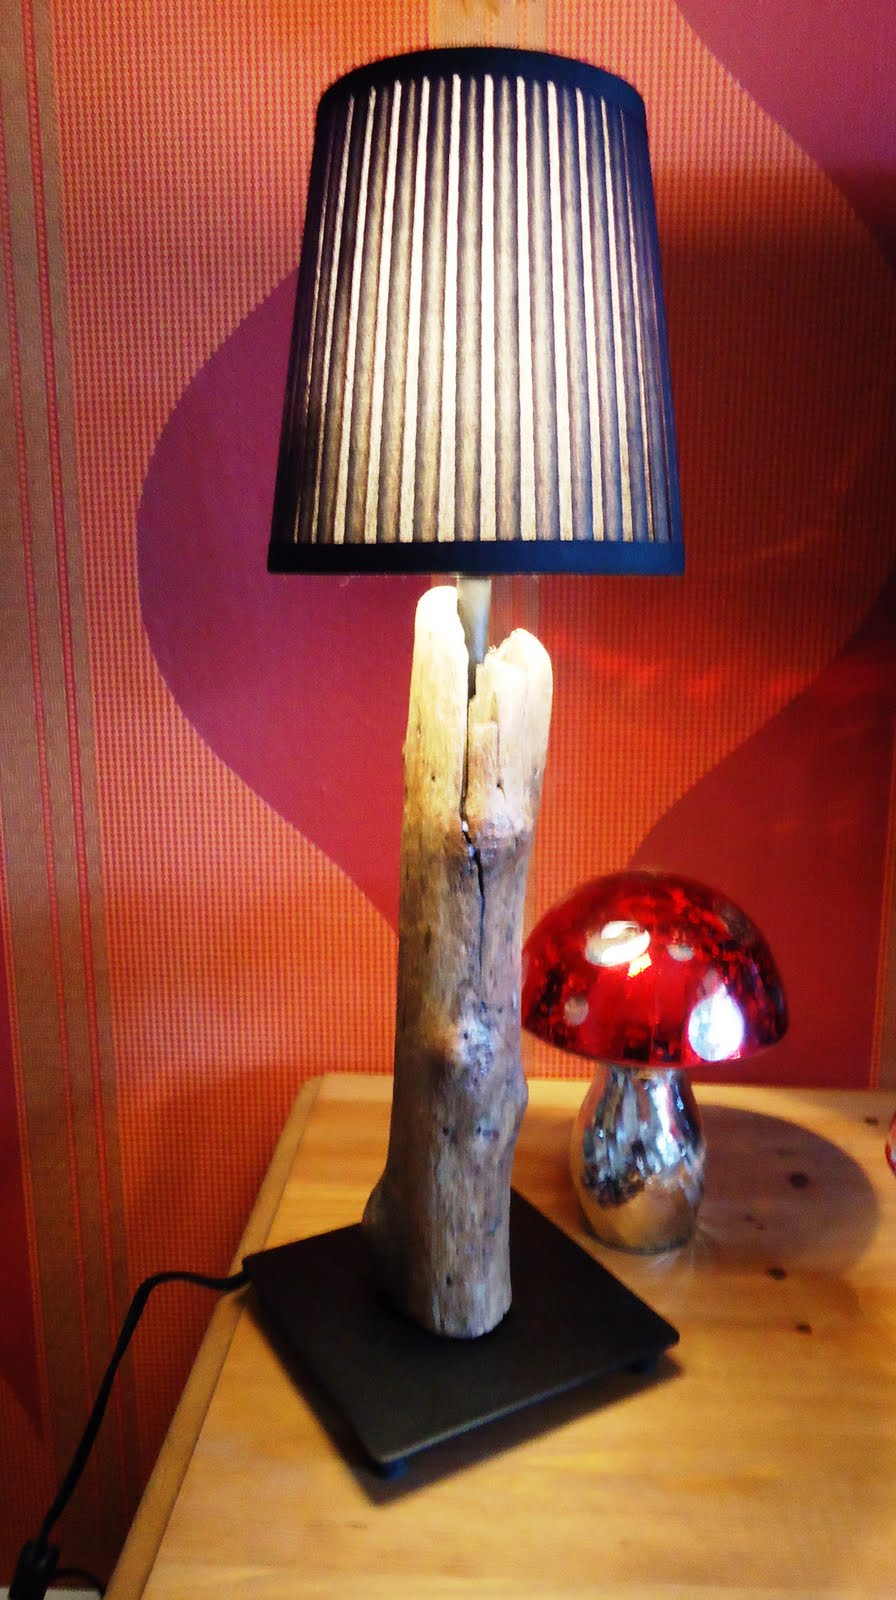 fembria art lampen und leuchten aus treibholz lamps and lighting made of driftwood. Black Bedroom Furniture Sets. Home Design Ideas